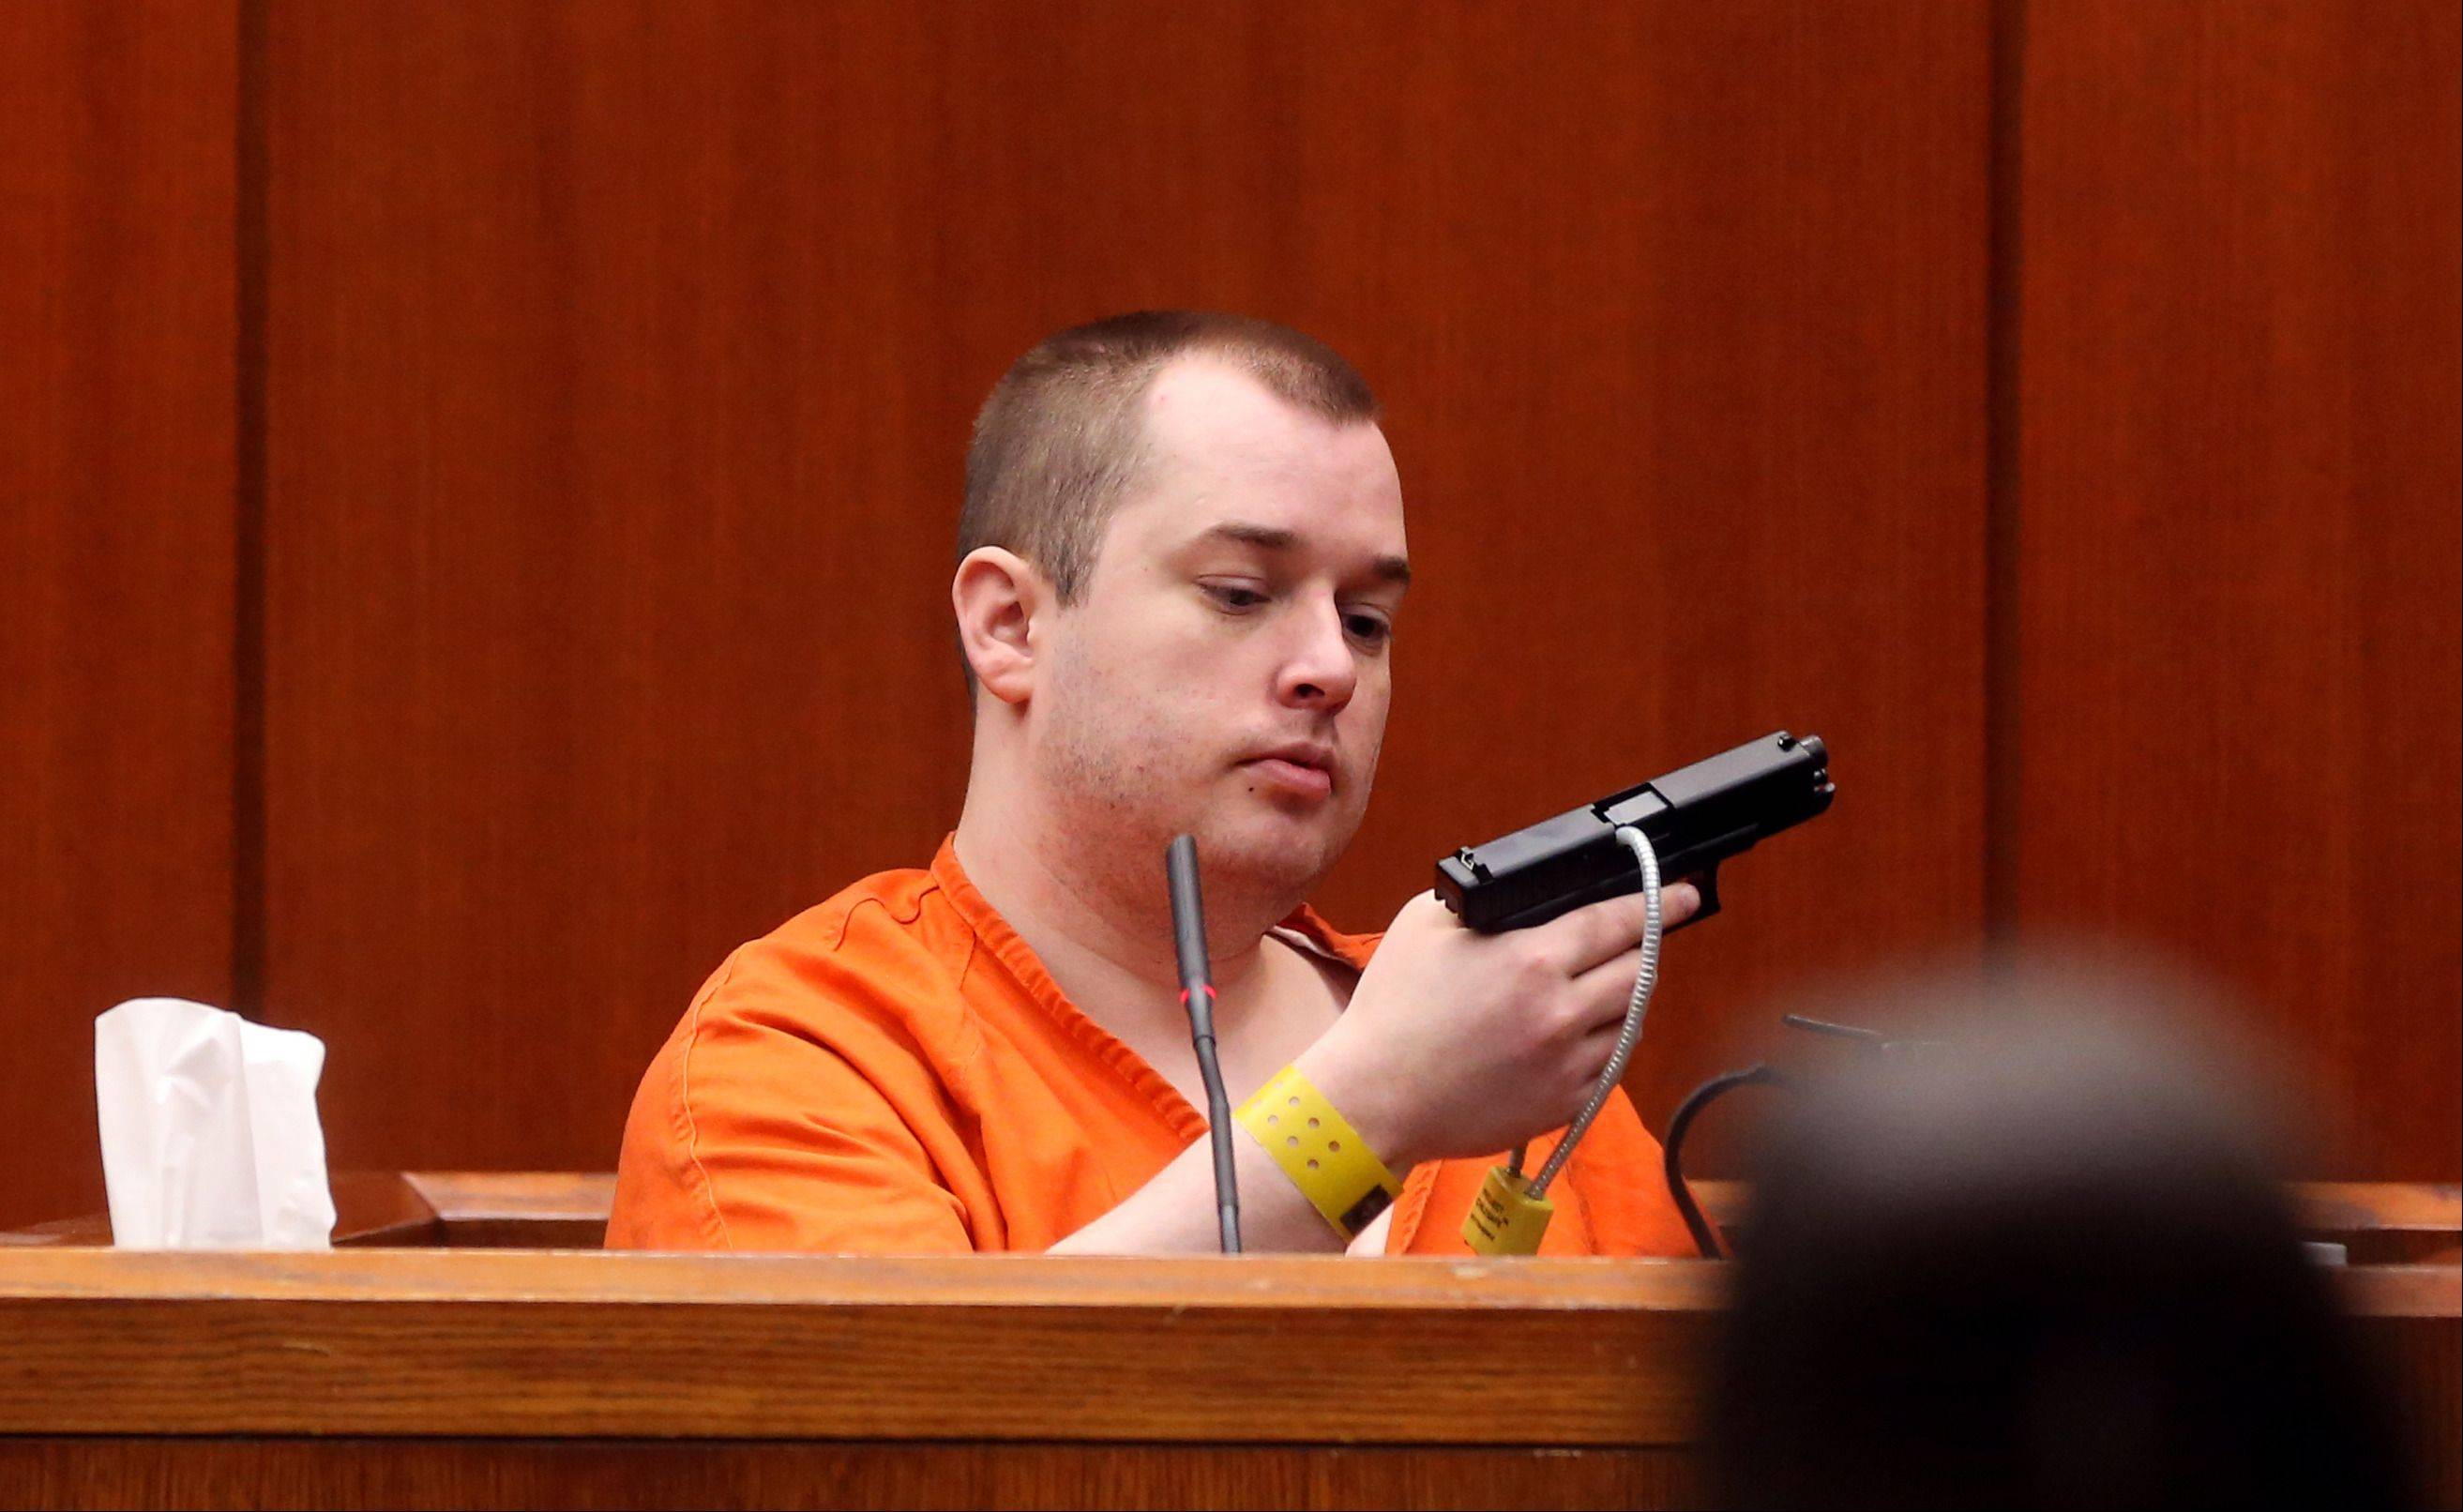 Jacob Nodarse holds the gun used to shoot and kill Michael Kramer, 20, and Kramer's parents, Jeffrey, 50, and Lori, 48, during cross-examination at co-defendant Johnny Borizov's trial in April. Nodarse faces 45 years to natural life when he is sentenced Monday.